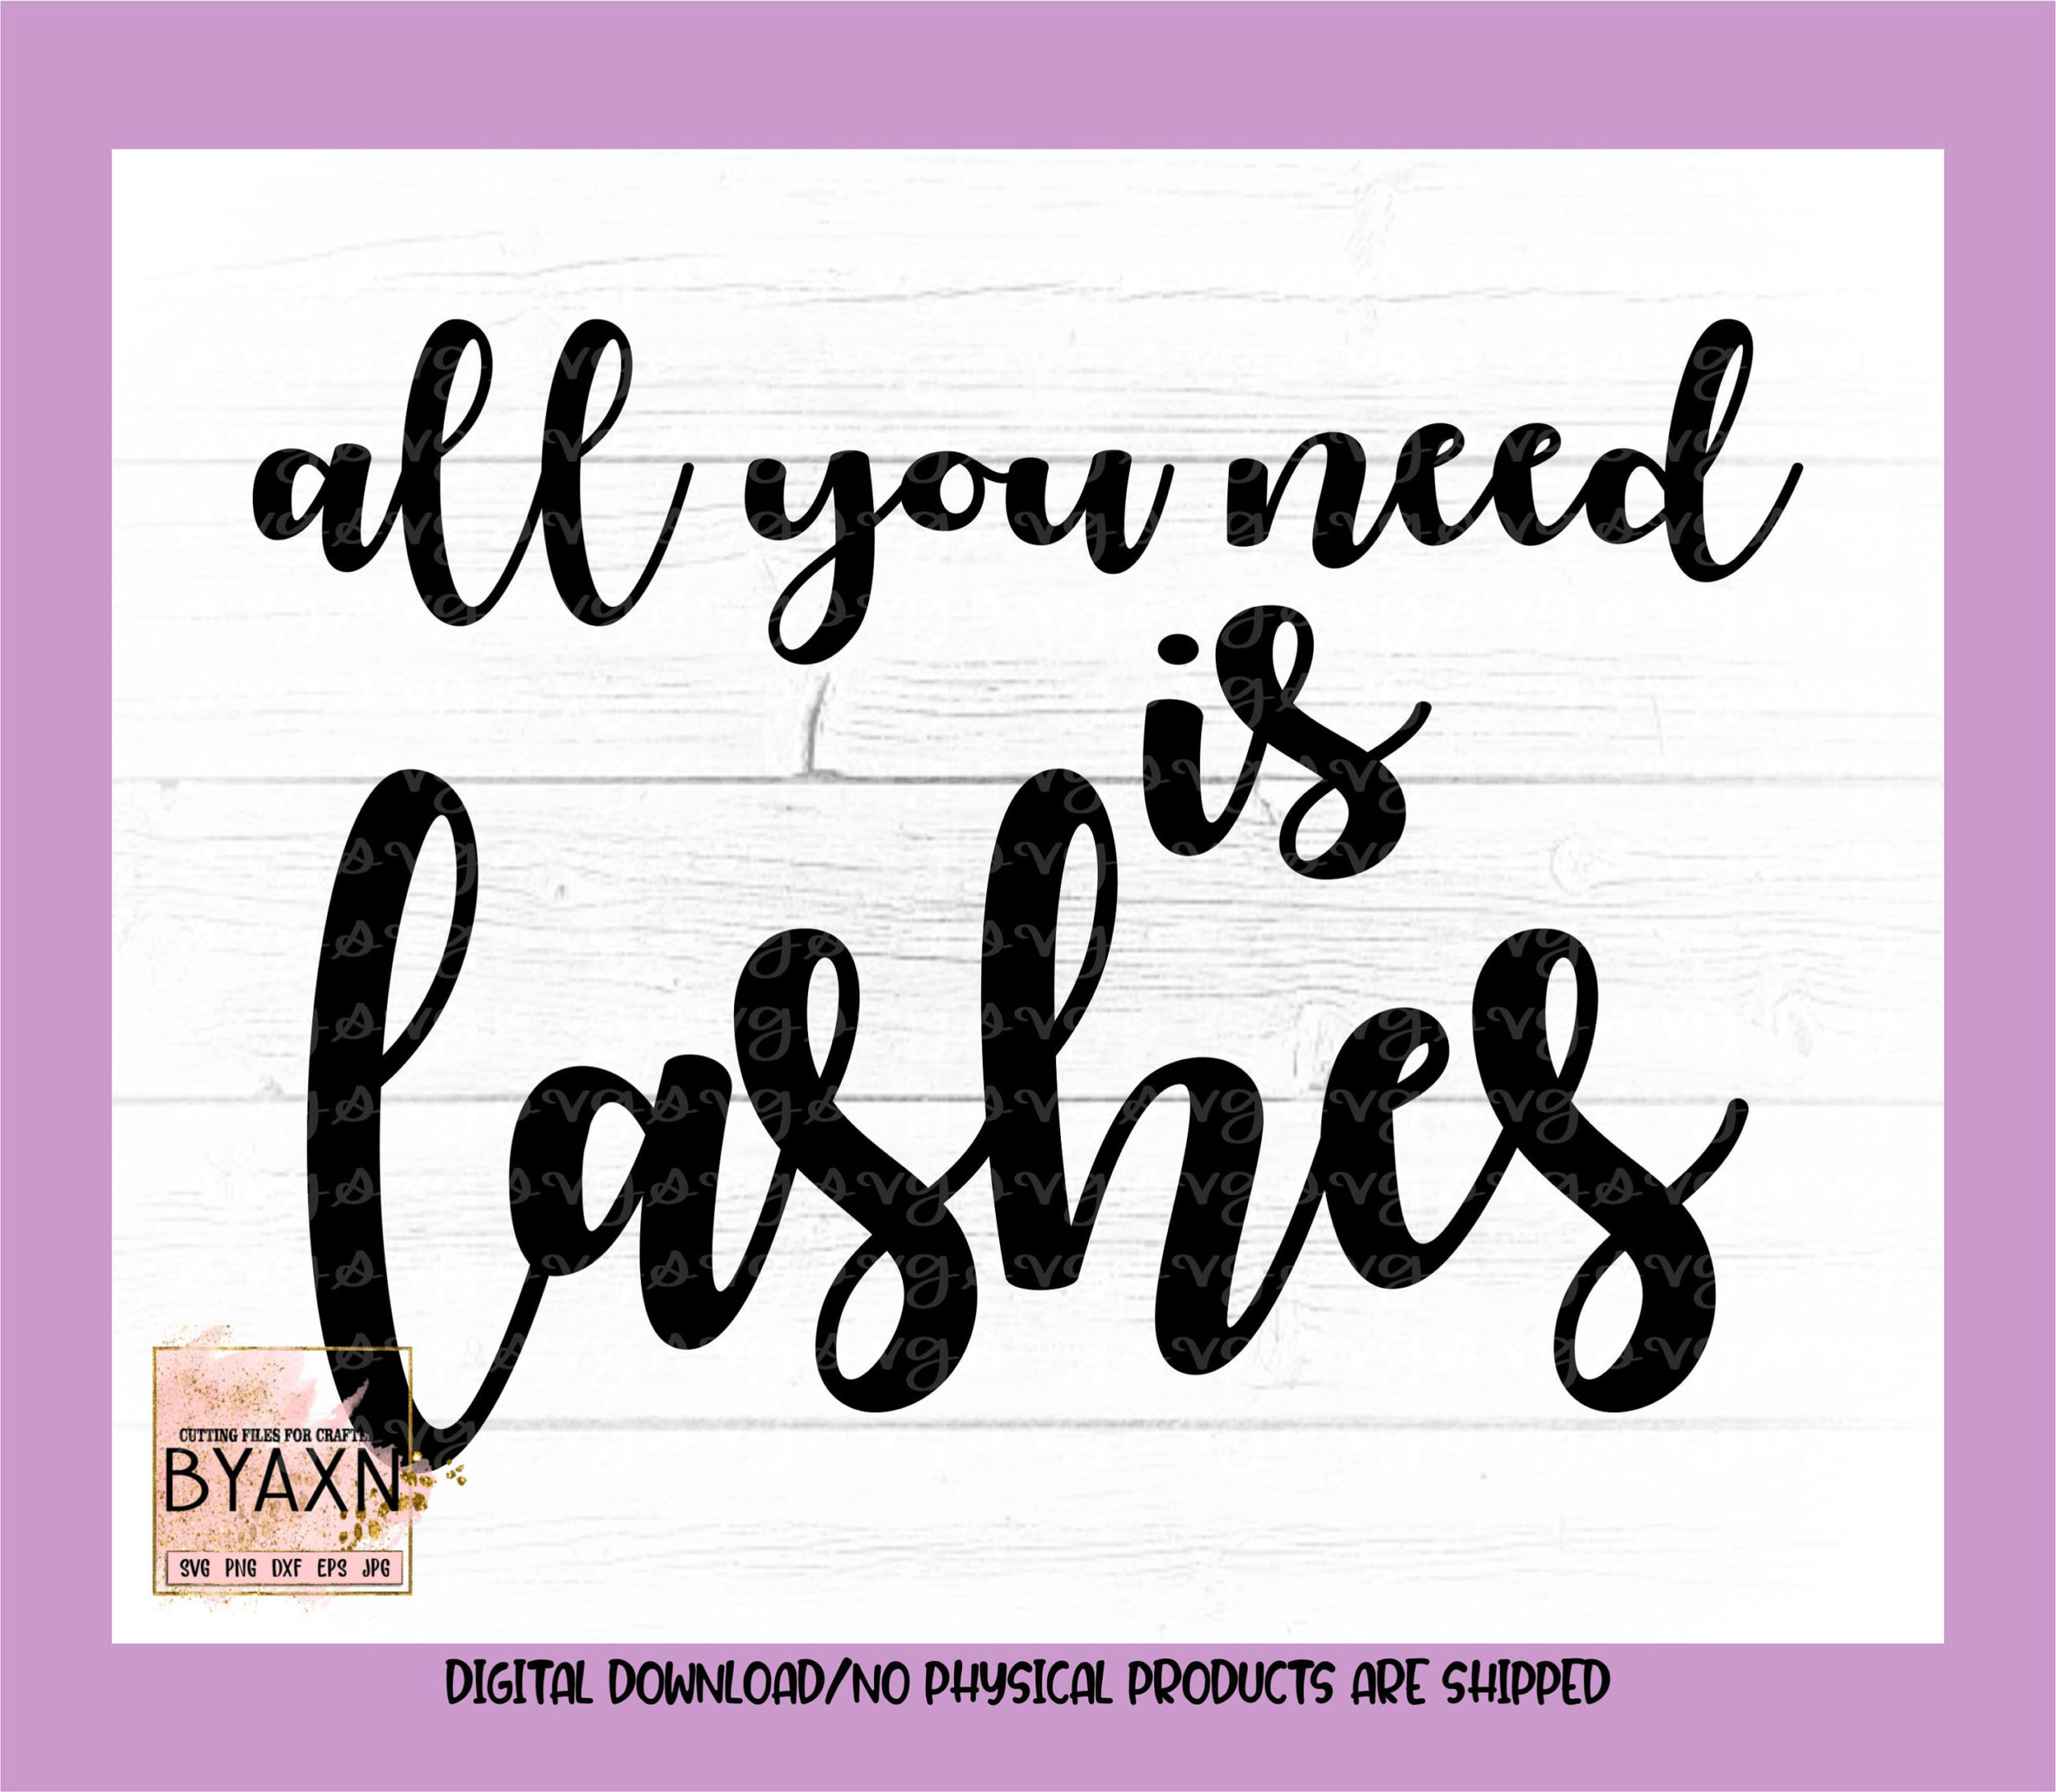 Make-up-svgall-you-need-is-lashes-svg-eyelashes-svg-mascara-svg-lashes-svg-eyelash-svg-makeup-svg-designs-makeup-cut-file-cricut-svg-60514c95